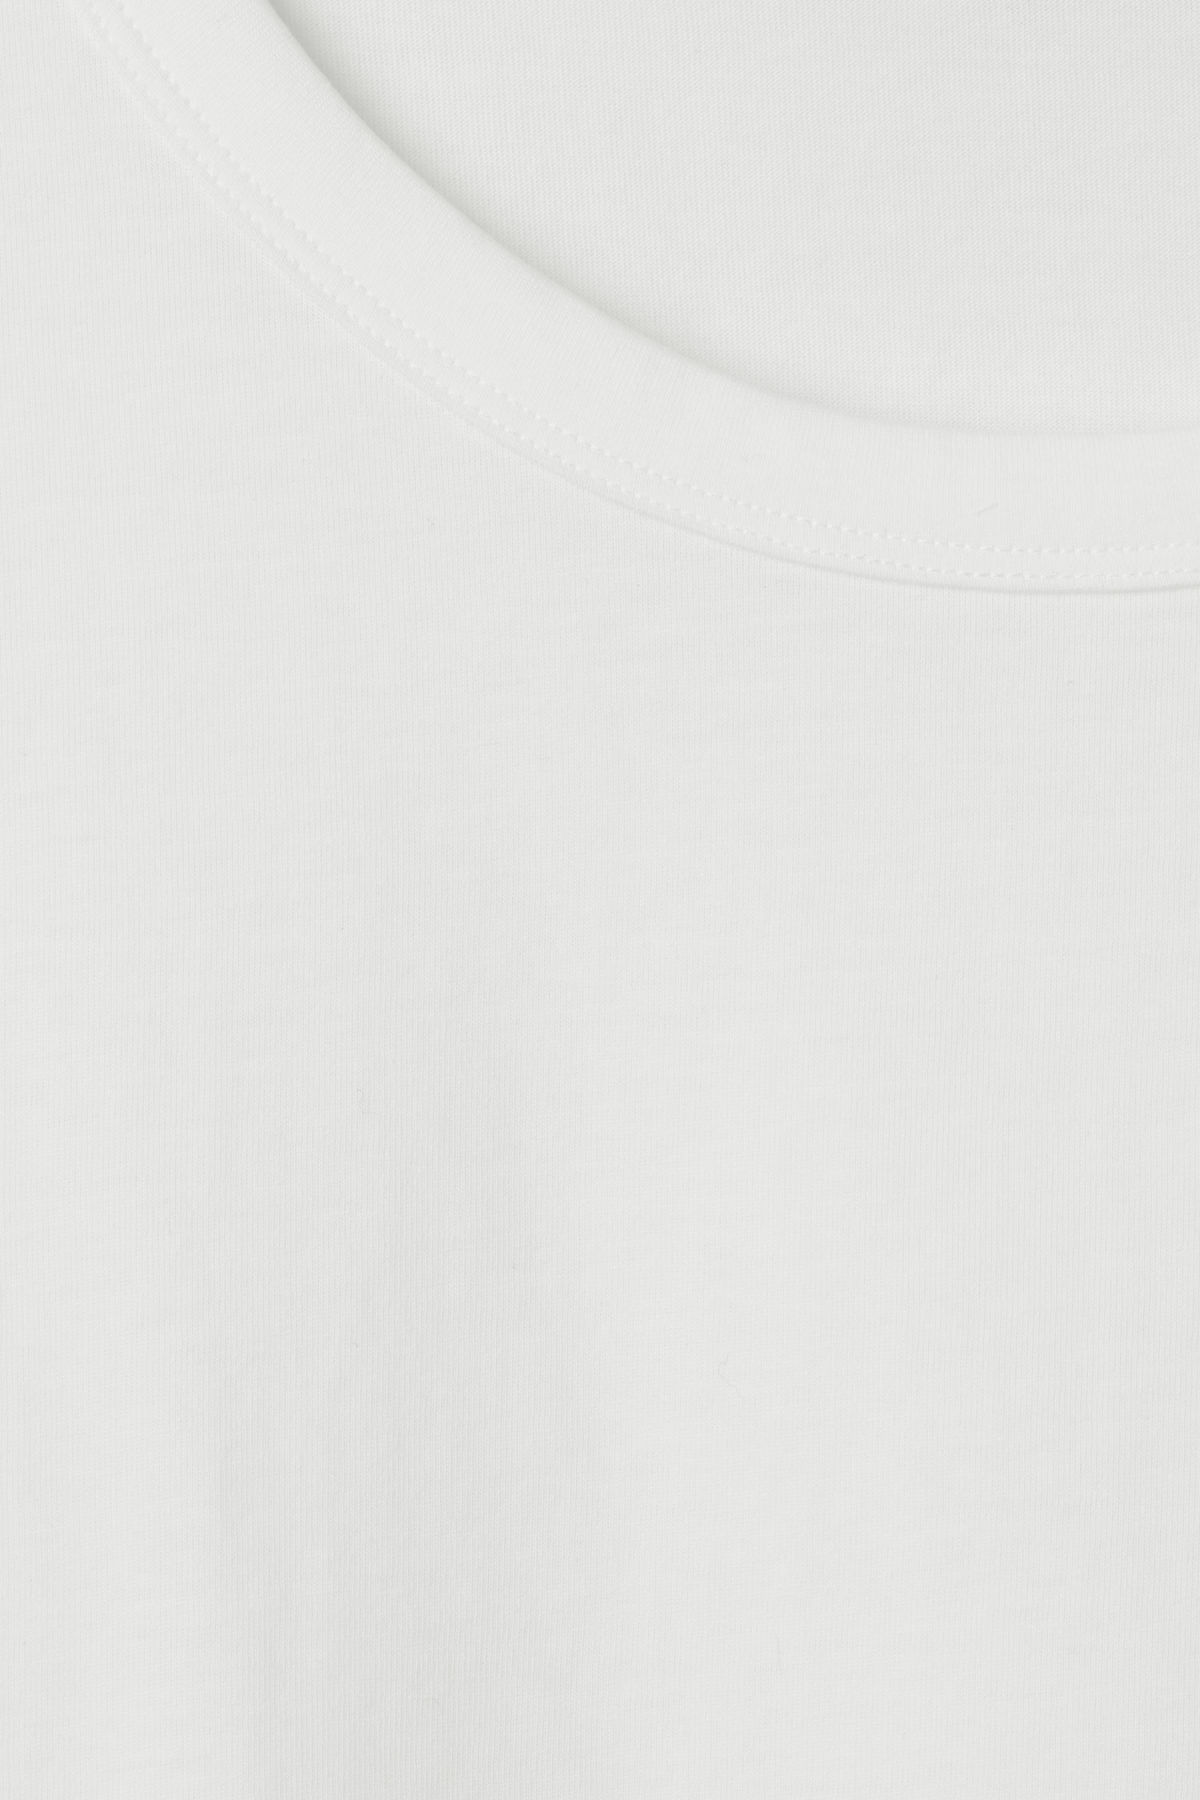 Detailed image of Weekday ely tee in white